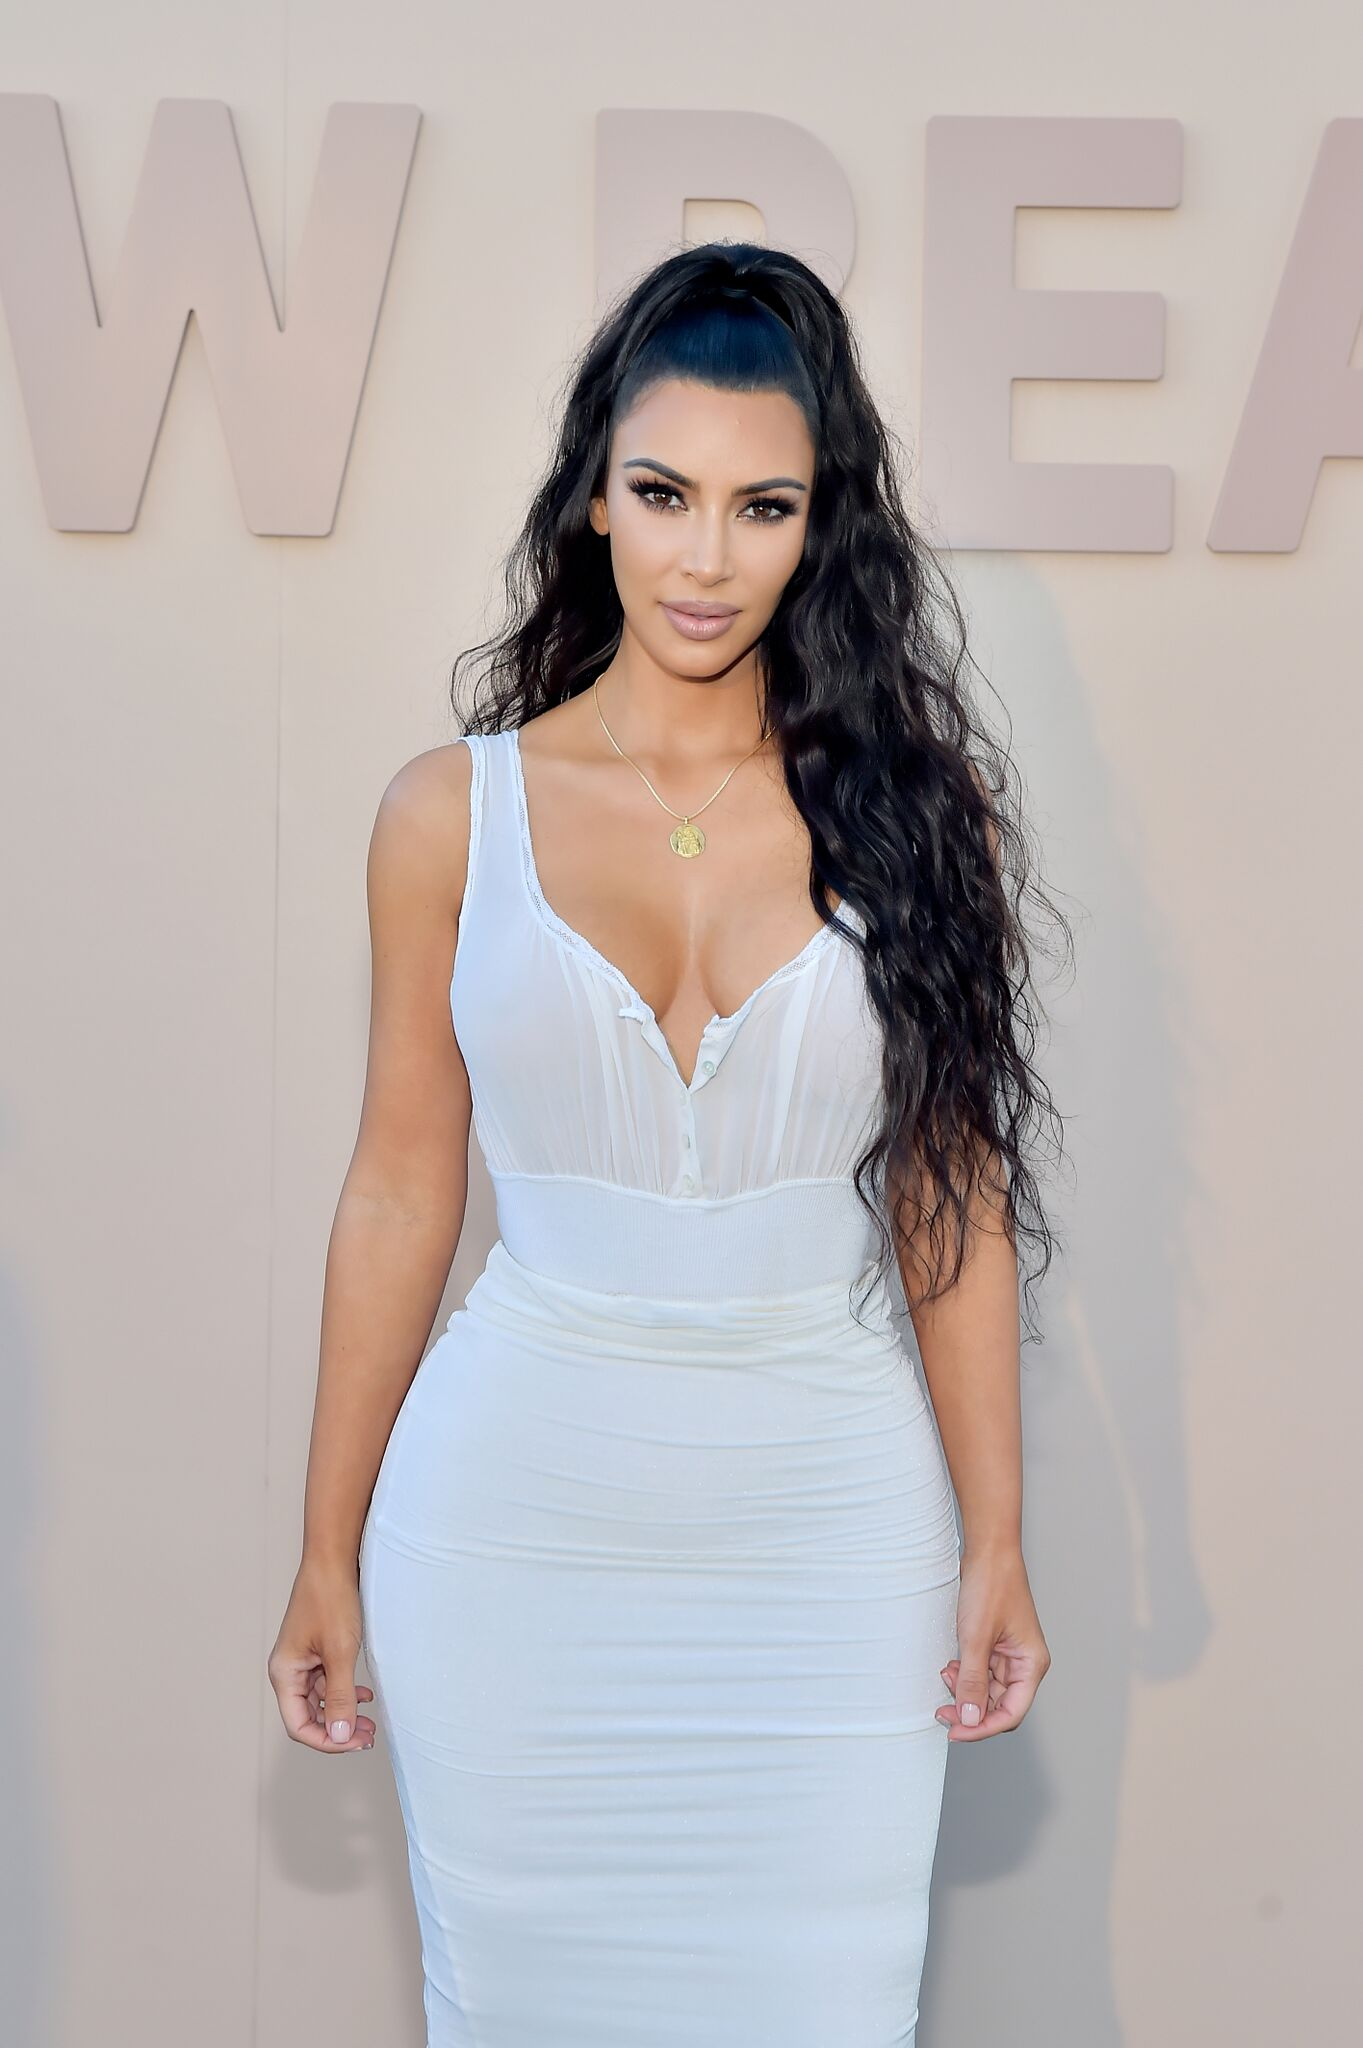 Kim Kardashian West attends KKW Beauty Fan Event at KKW Beauty | Getty Images